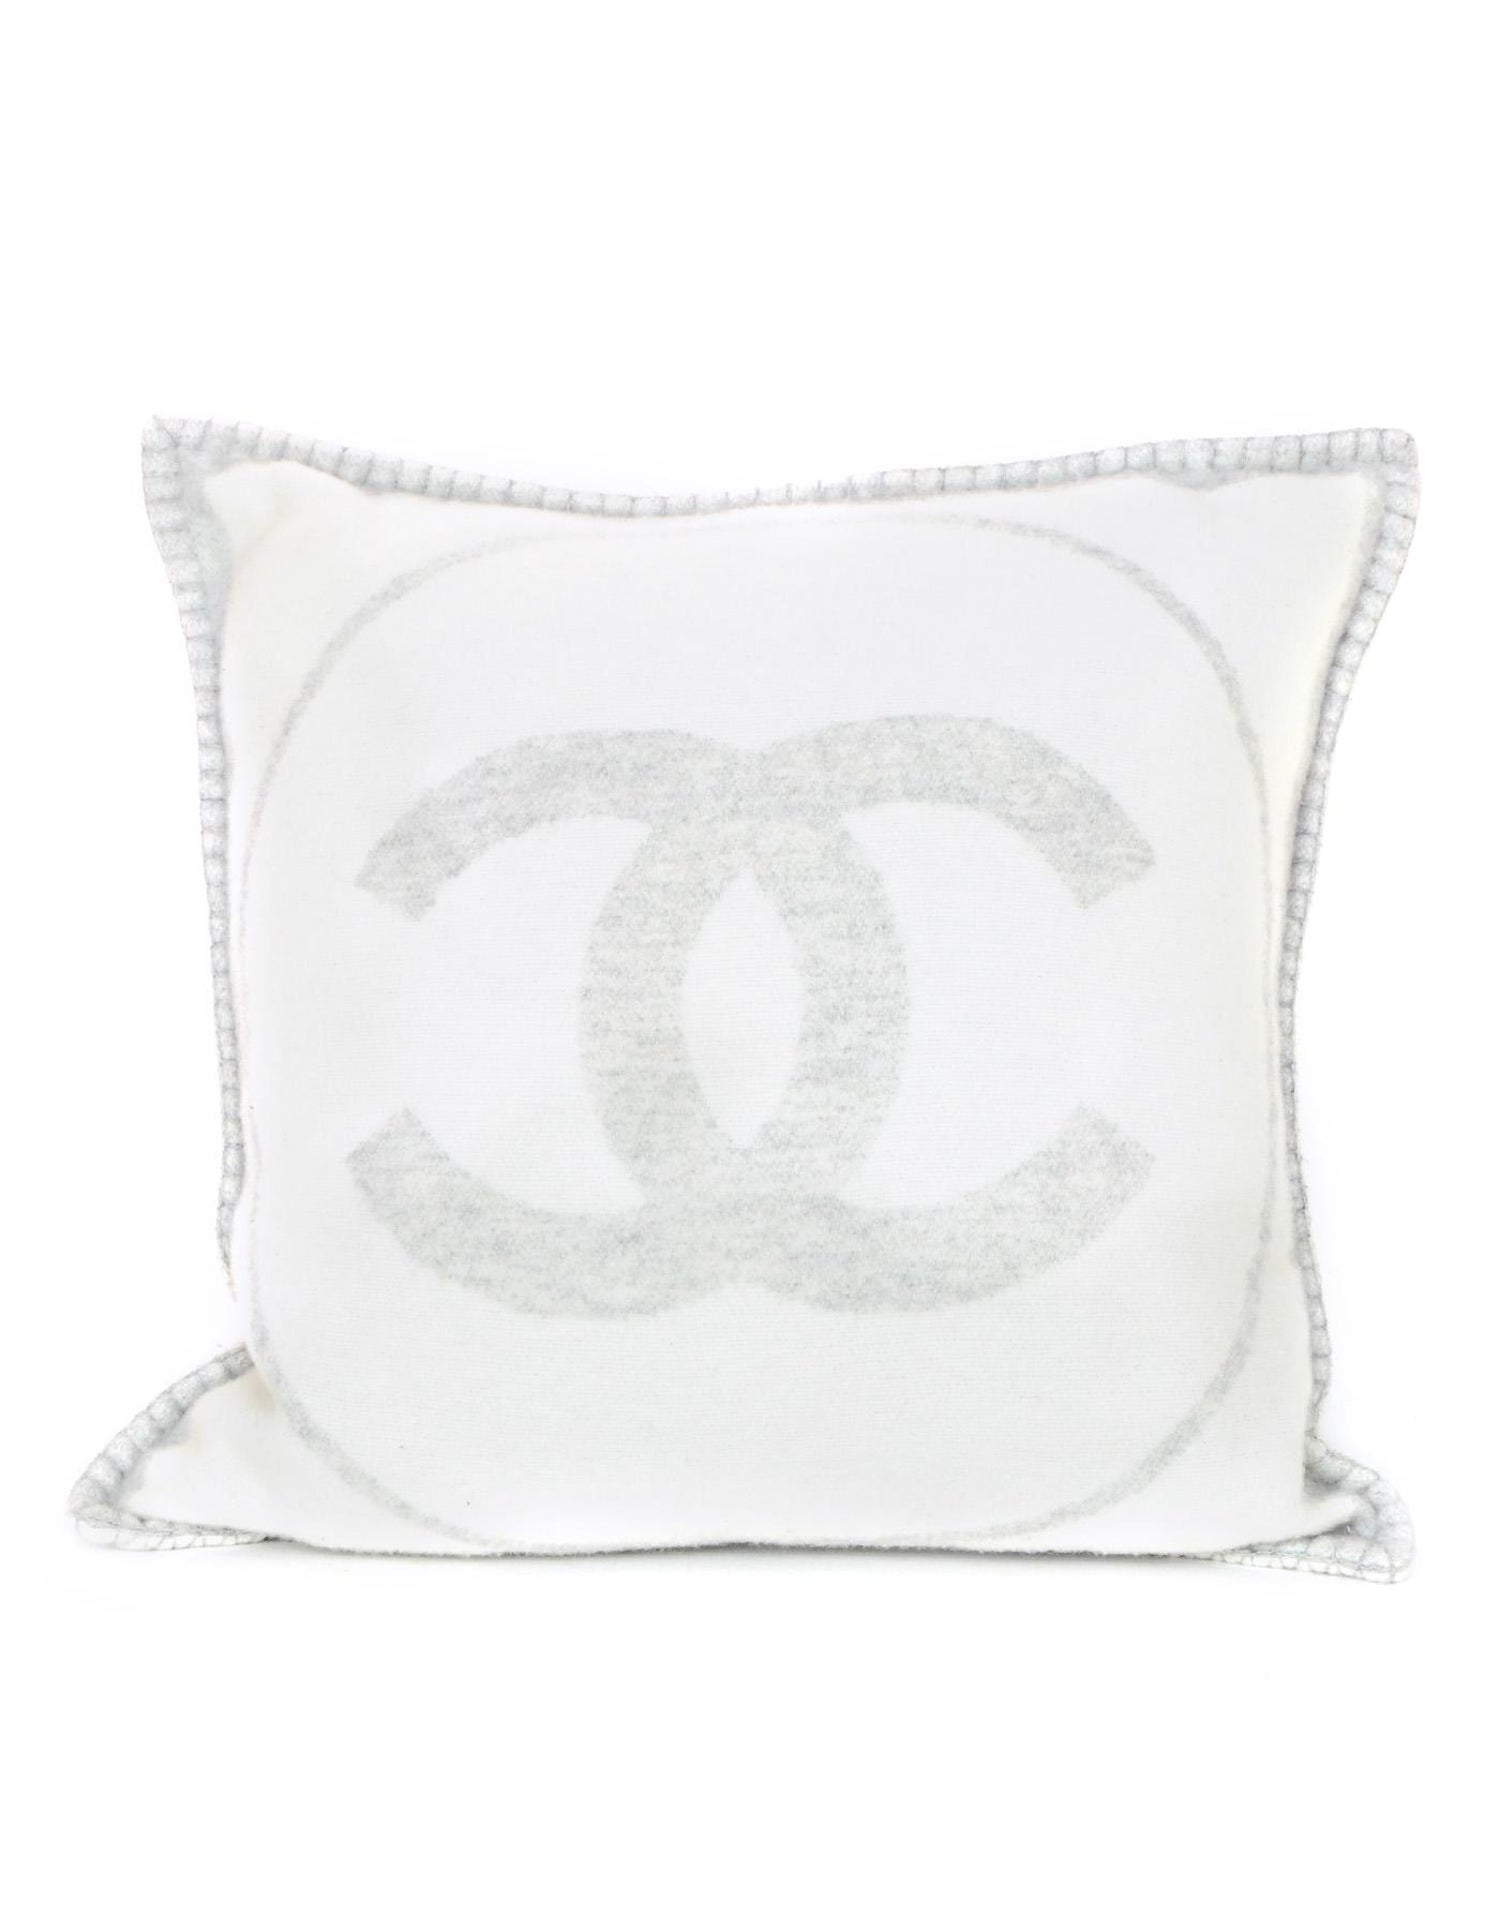 098ffa5e679 Chanel Off White and Grey Wool and Cashmere CC Square Throw Pillow and  Cover at 1stdibs